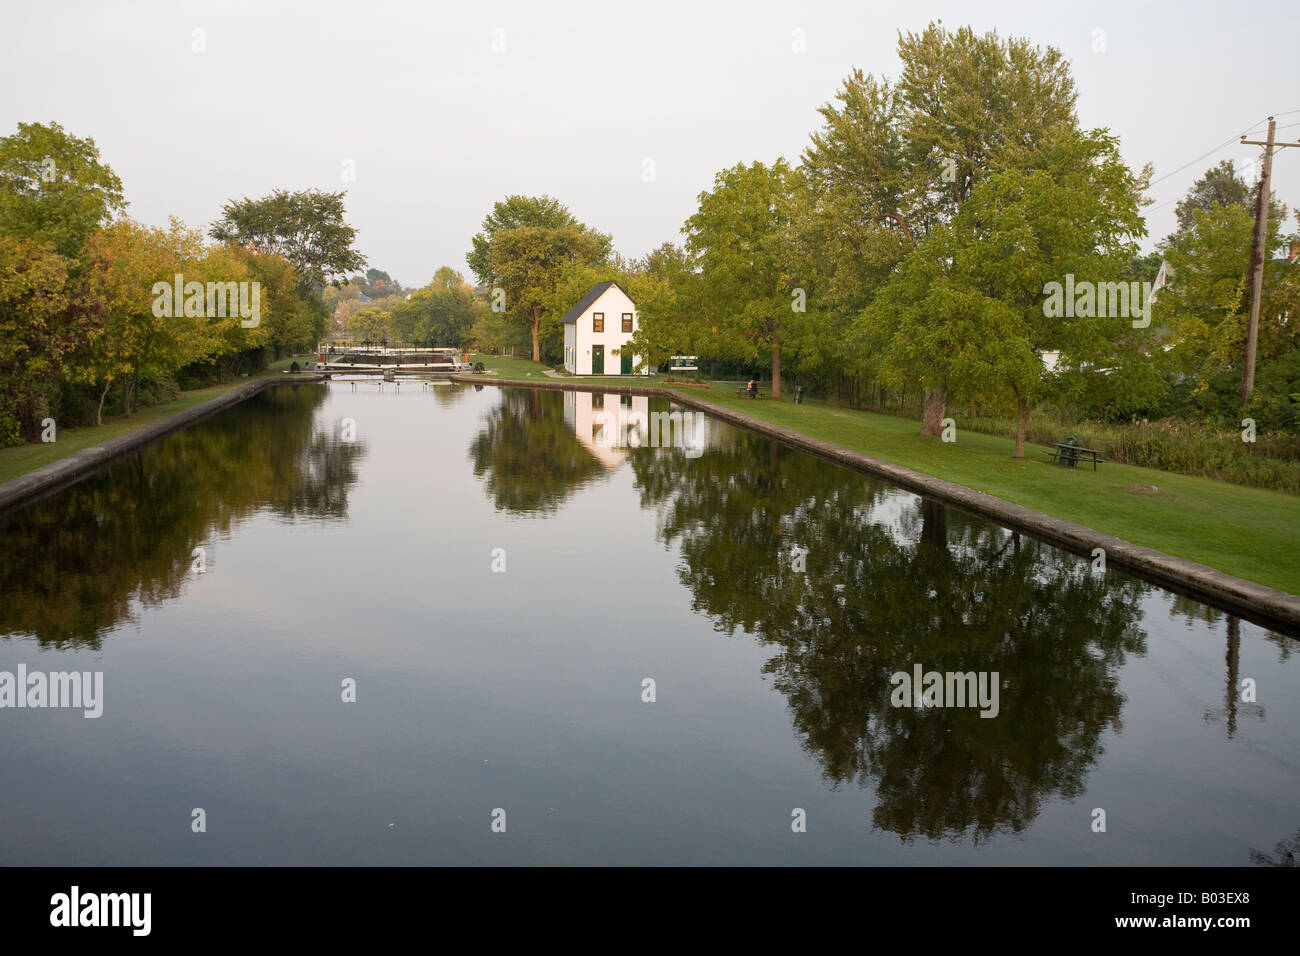 Lock Master's House Horizontal The lock master's house reflected in the still waters of the lock at Merrickville - Stock Image